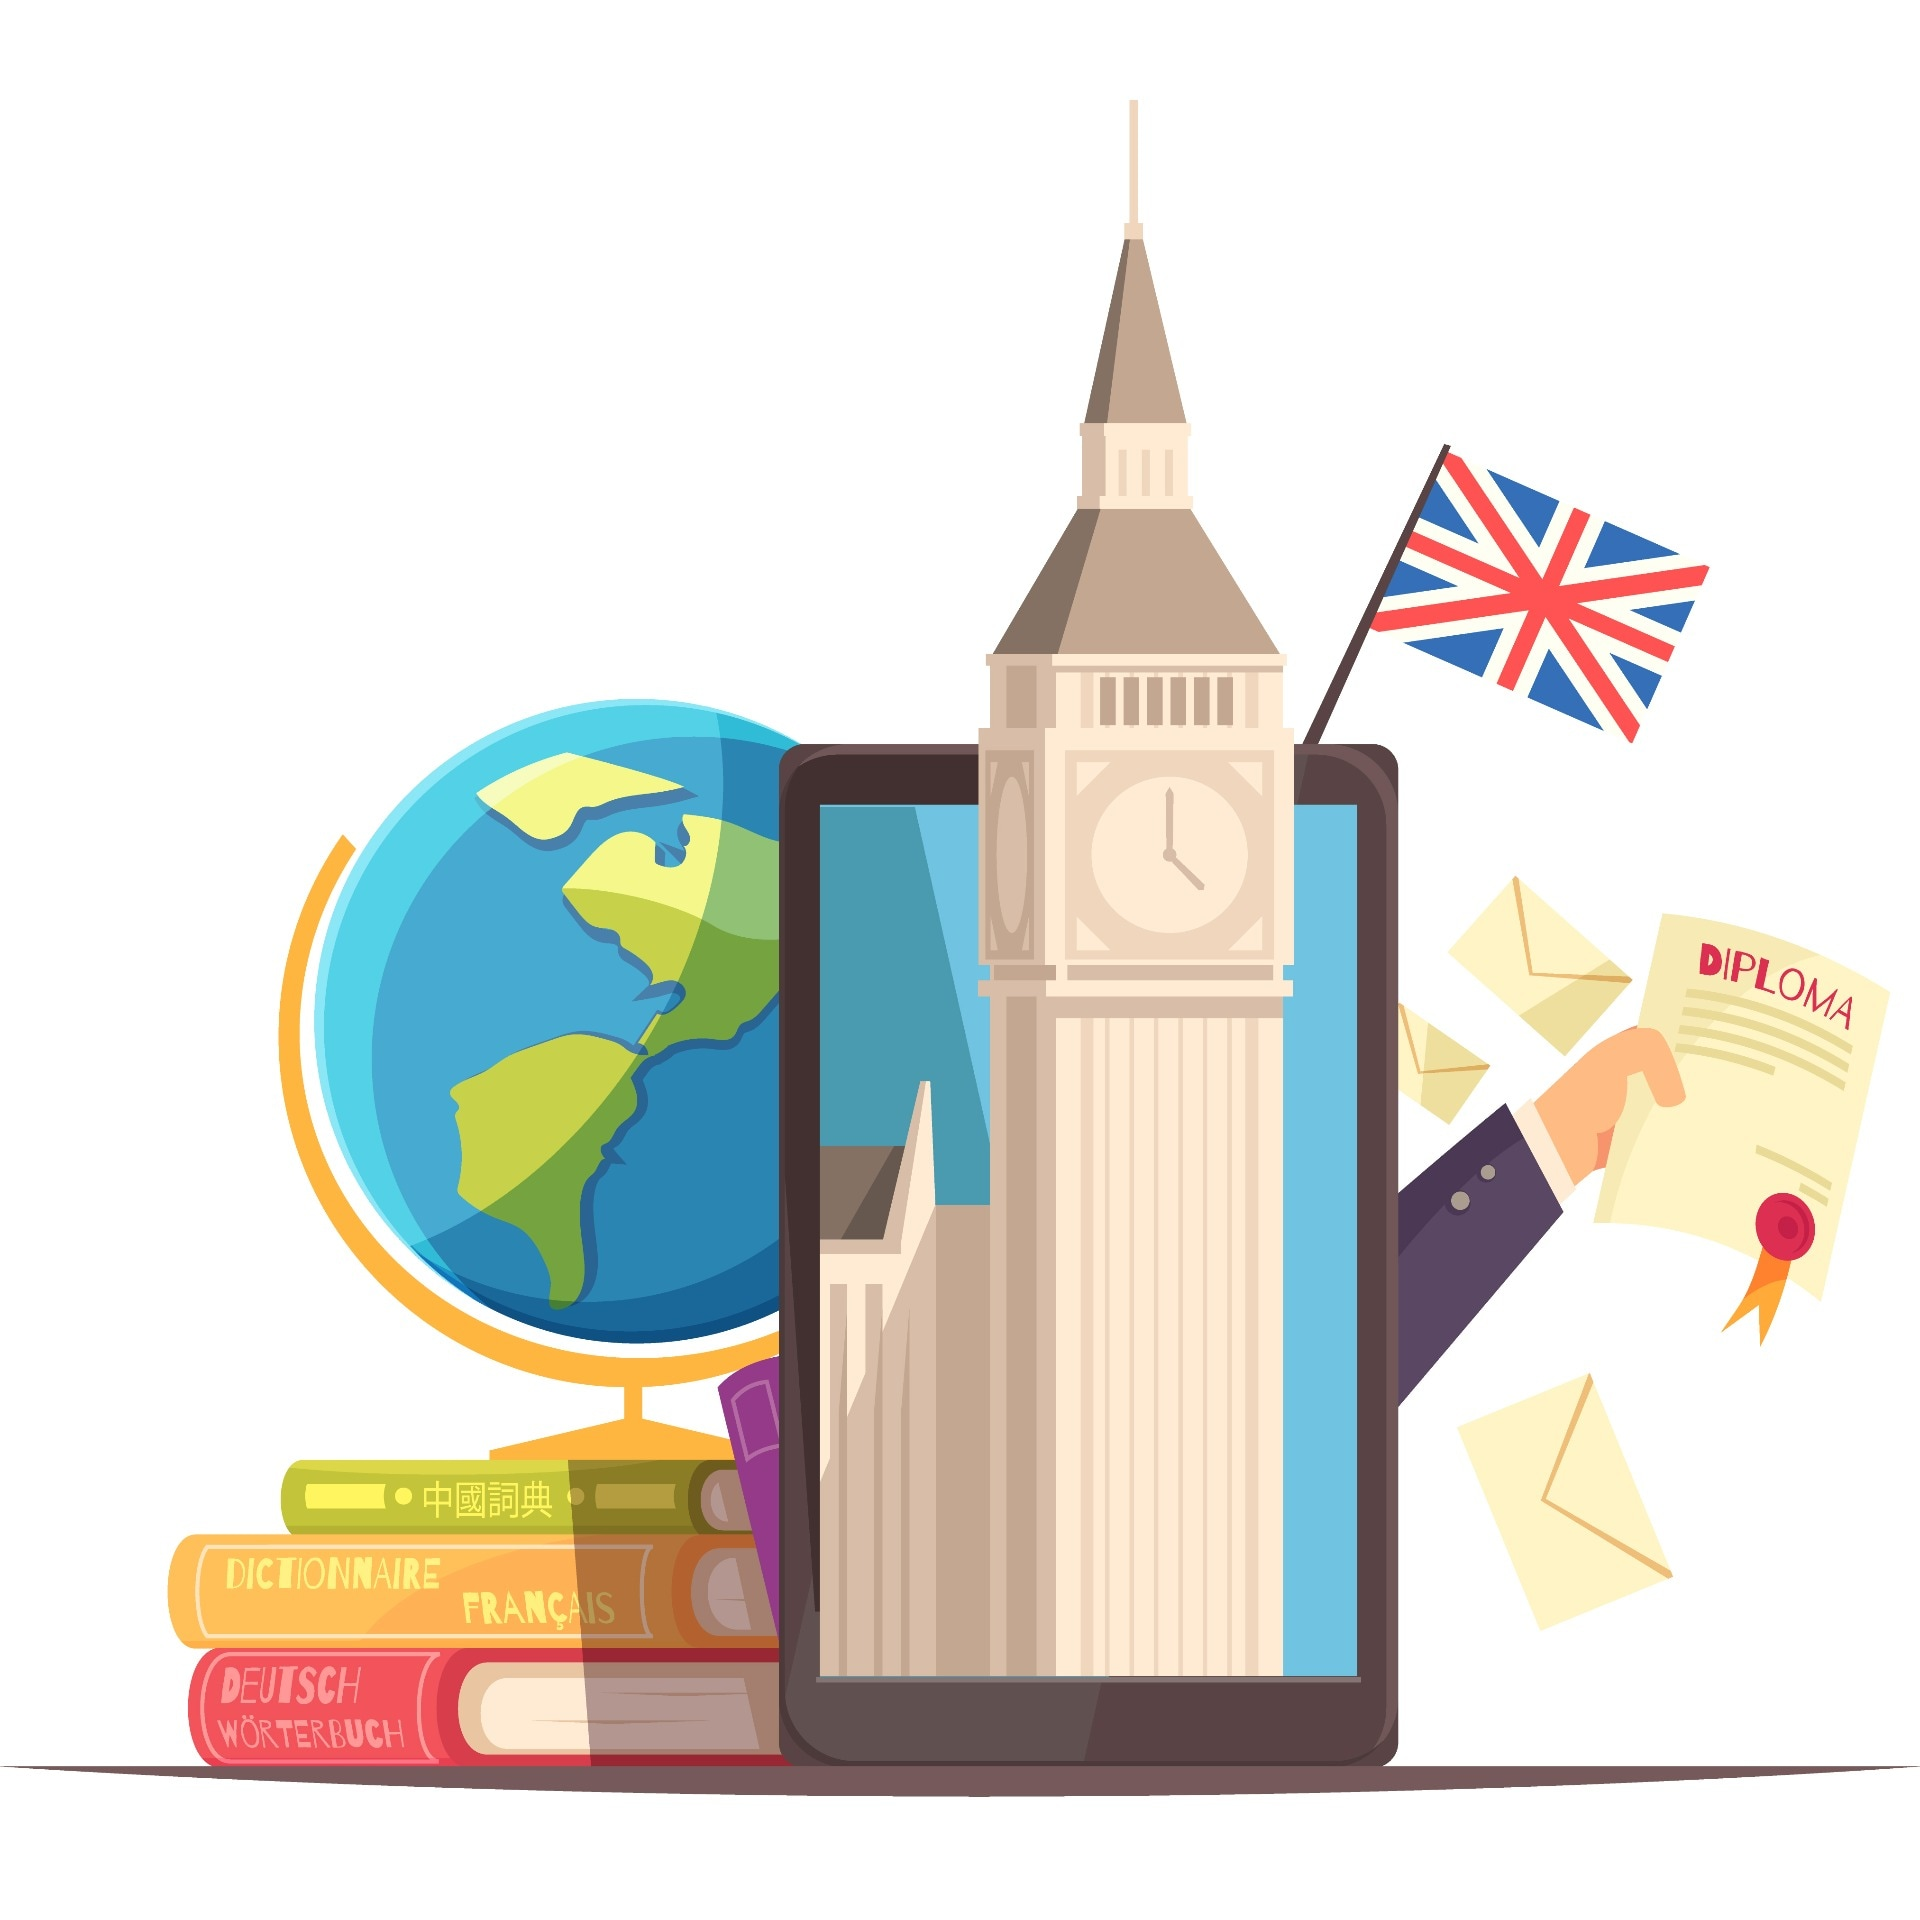 Anyone who dreams to get settled in an English-speaking country like the UK, the US, New Zealand, Canada, Australia, come & get trained by us on IELTS.